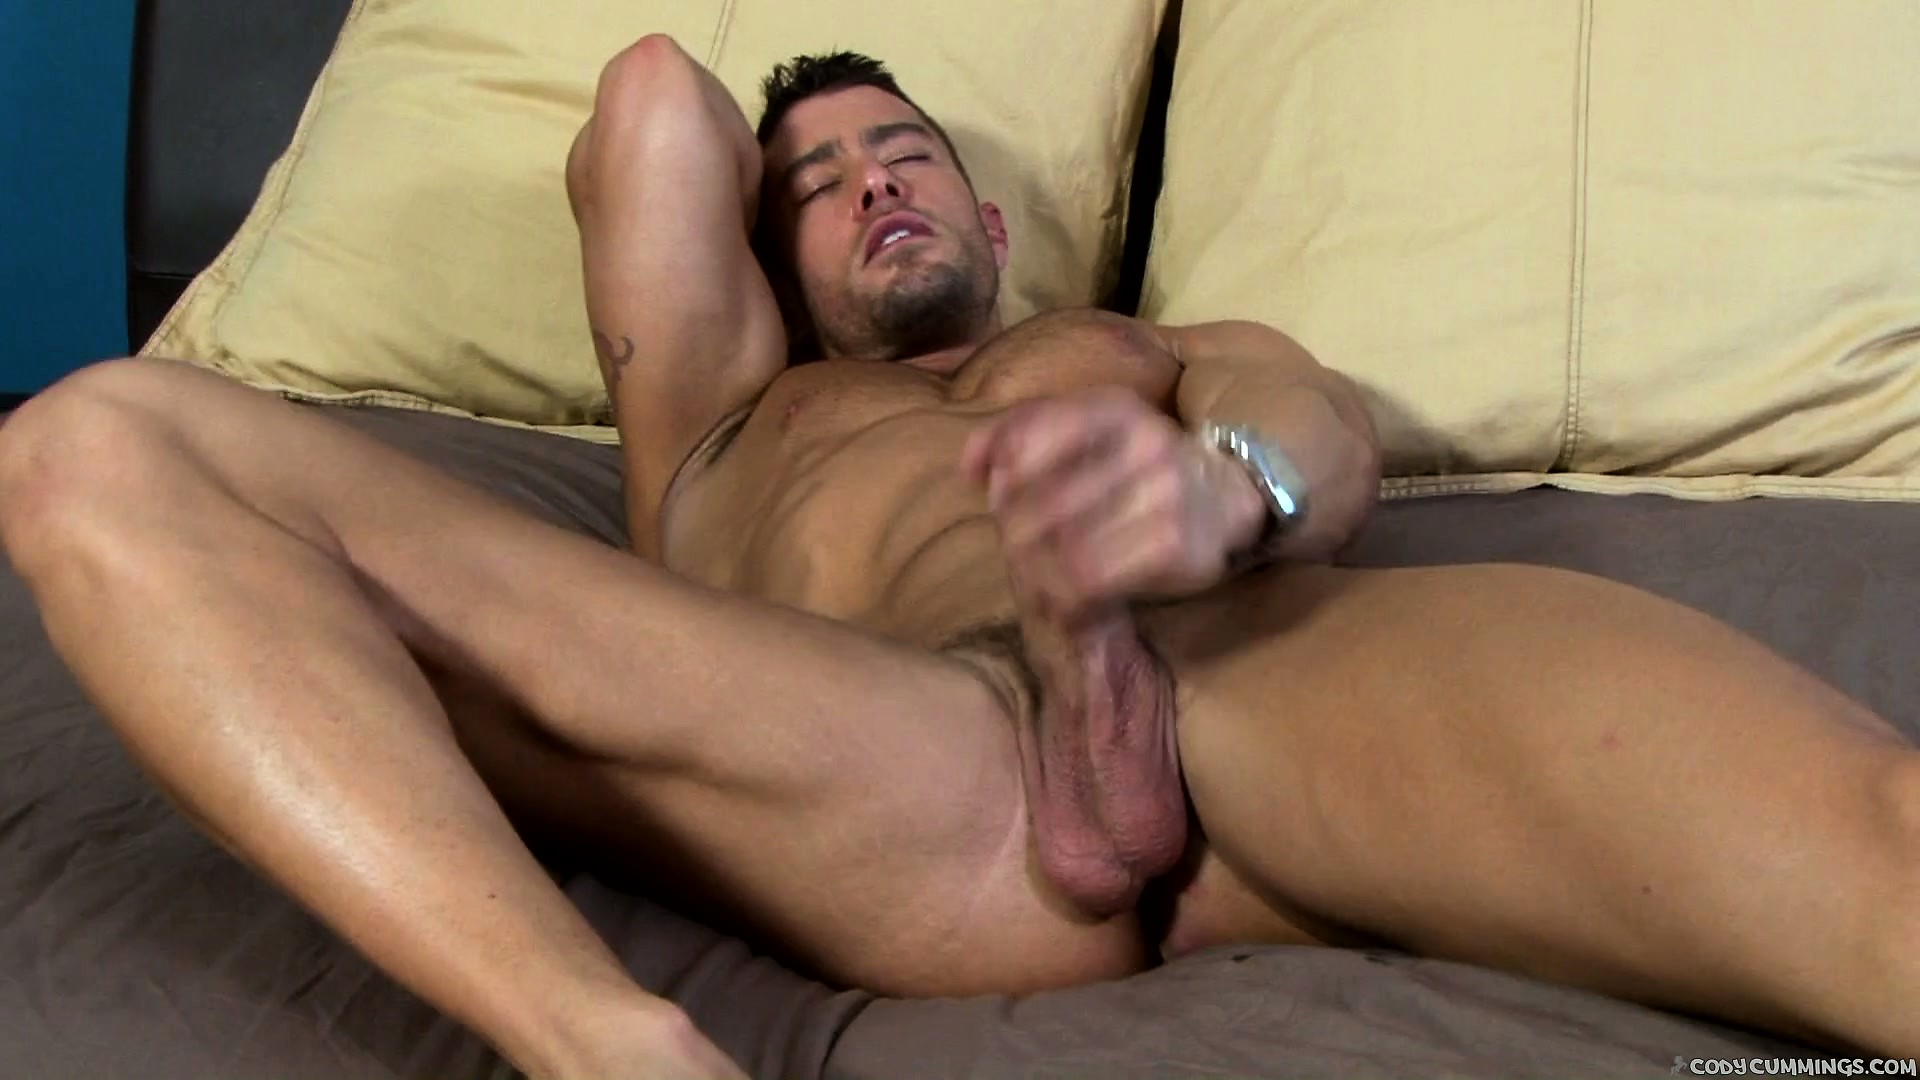 Porno Video of Excellent Woodman Cool Cummings Strokes His Tasty Nuts And Member